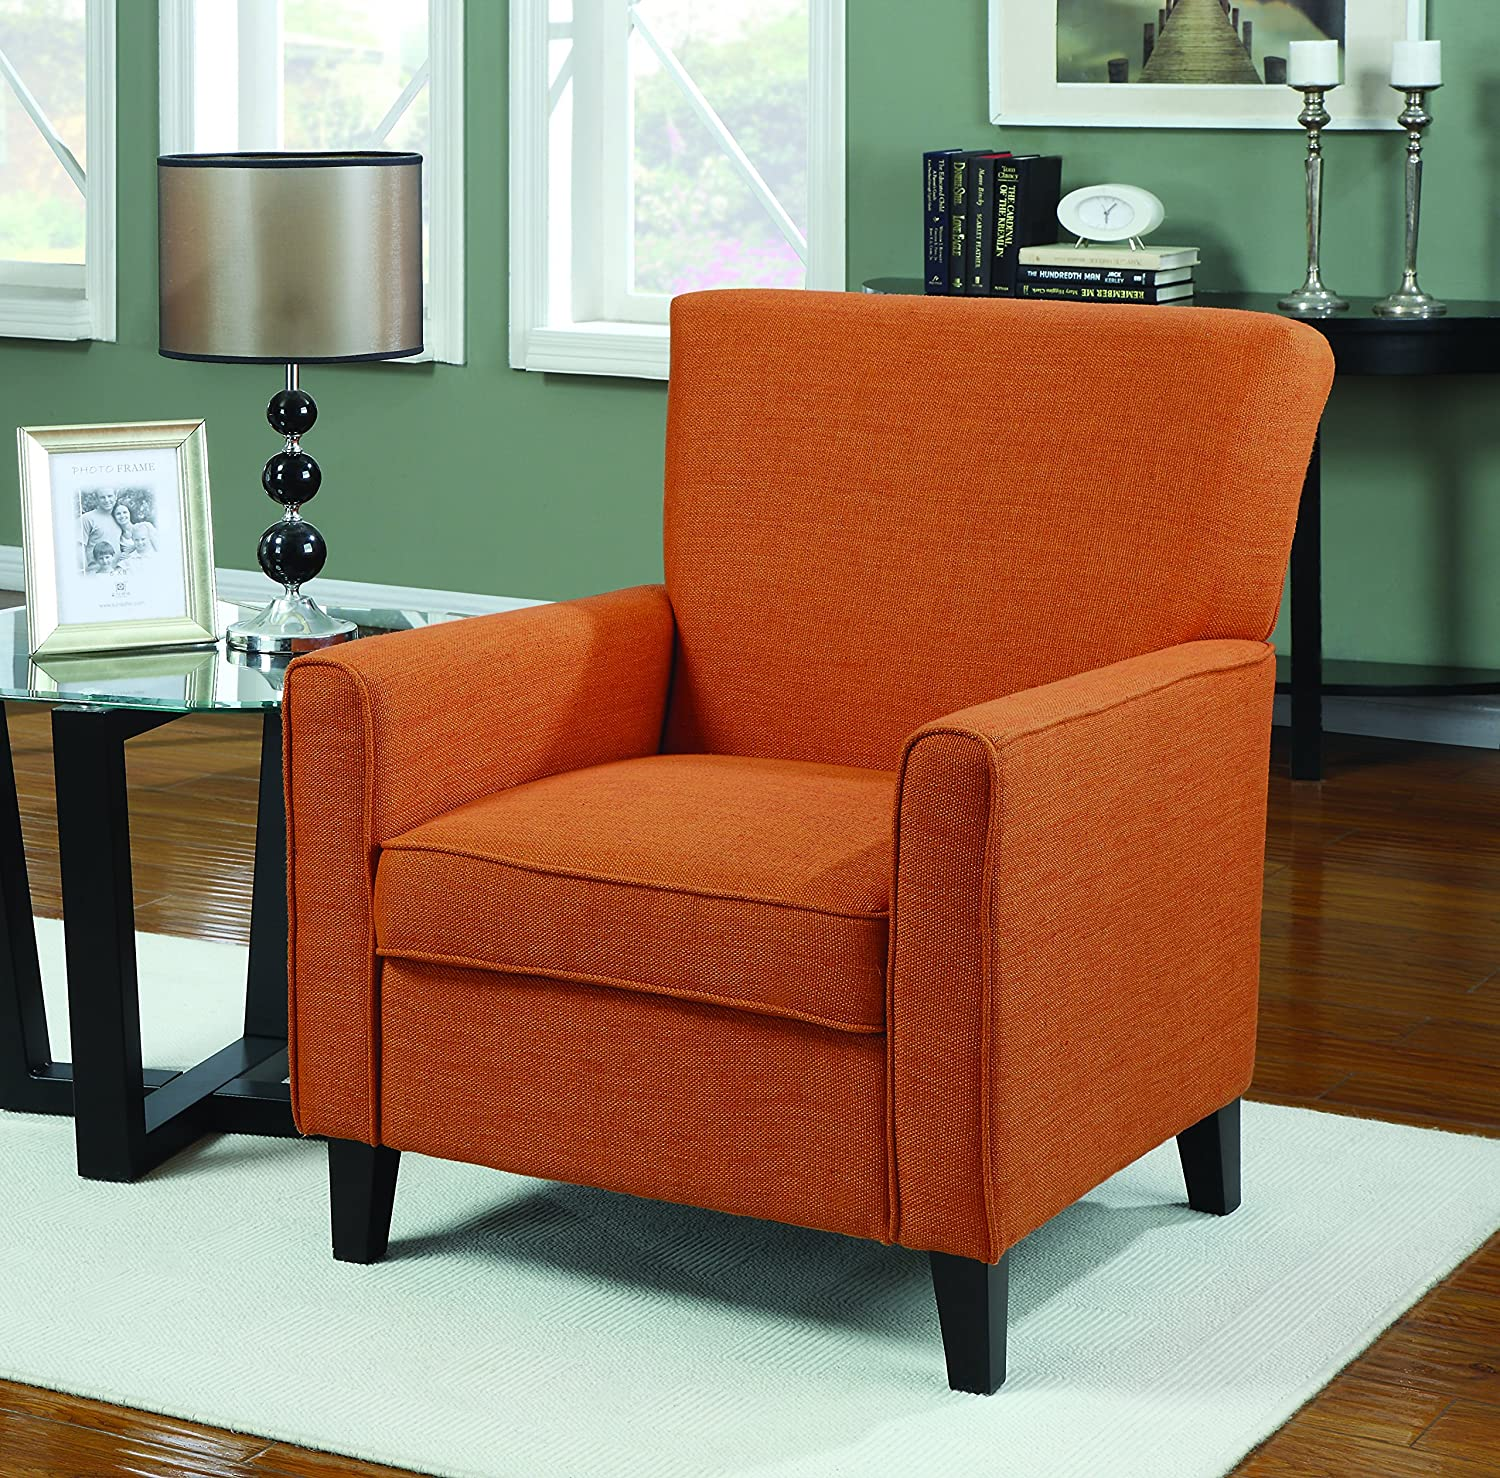 Orange Chairs Living Room Amazoncom Coaster Home Furnishings Casual Accent Chair Orange